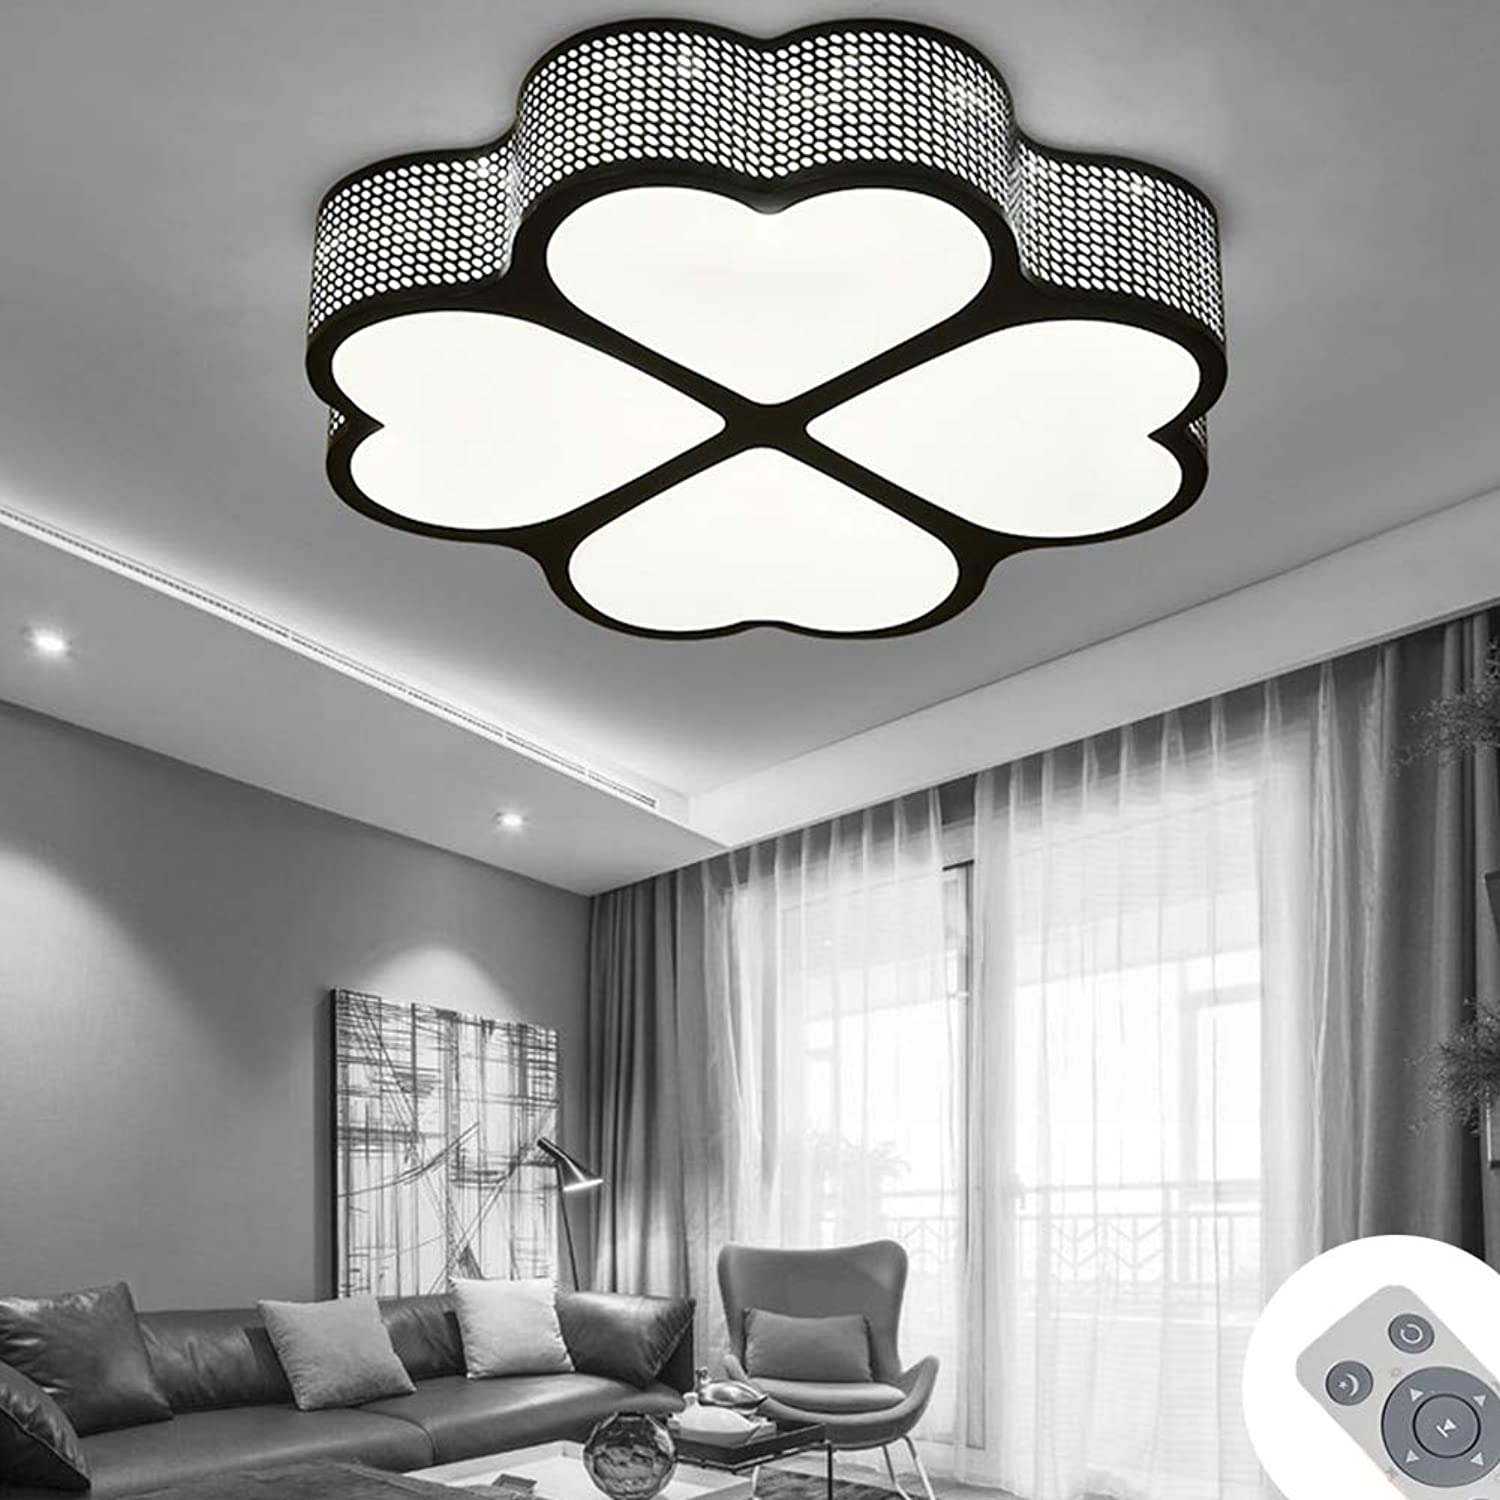 CX-LIGHT LED LED LED Deckenlampe Modern Design Dimmbar ...